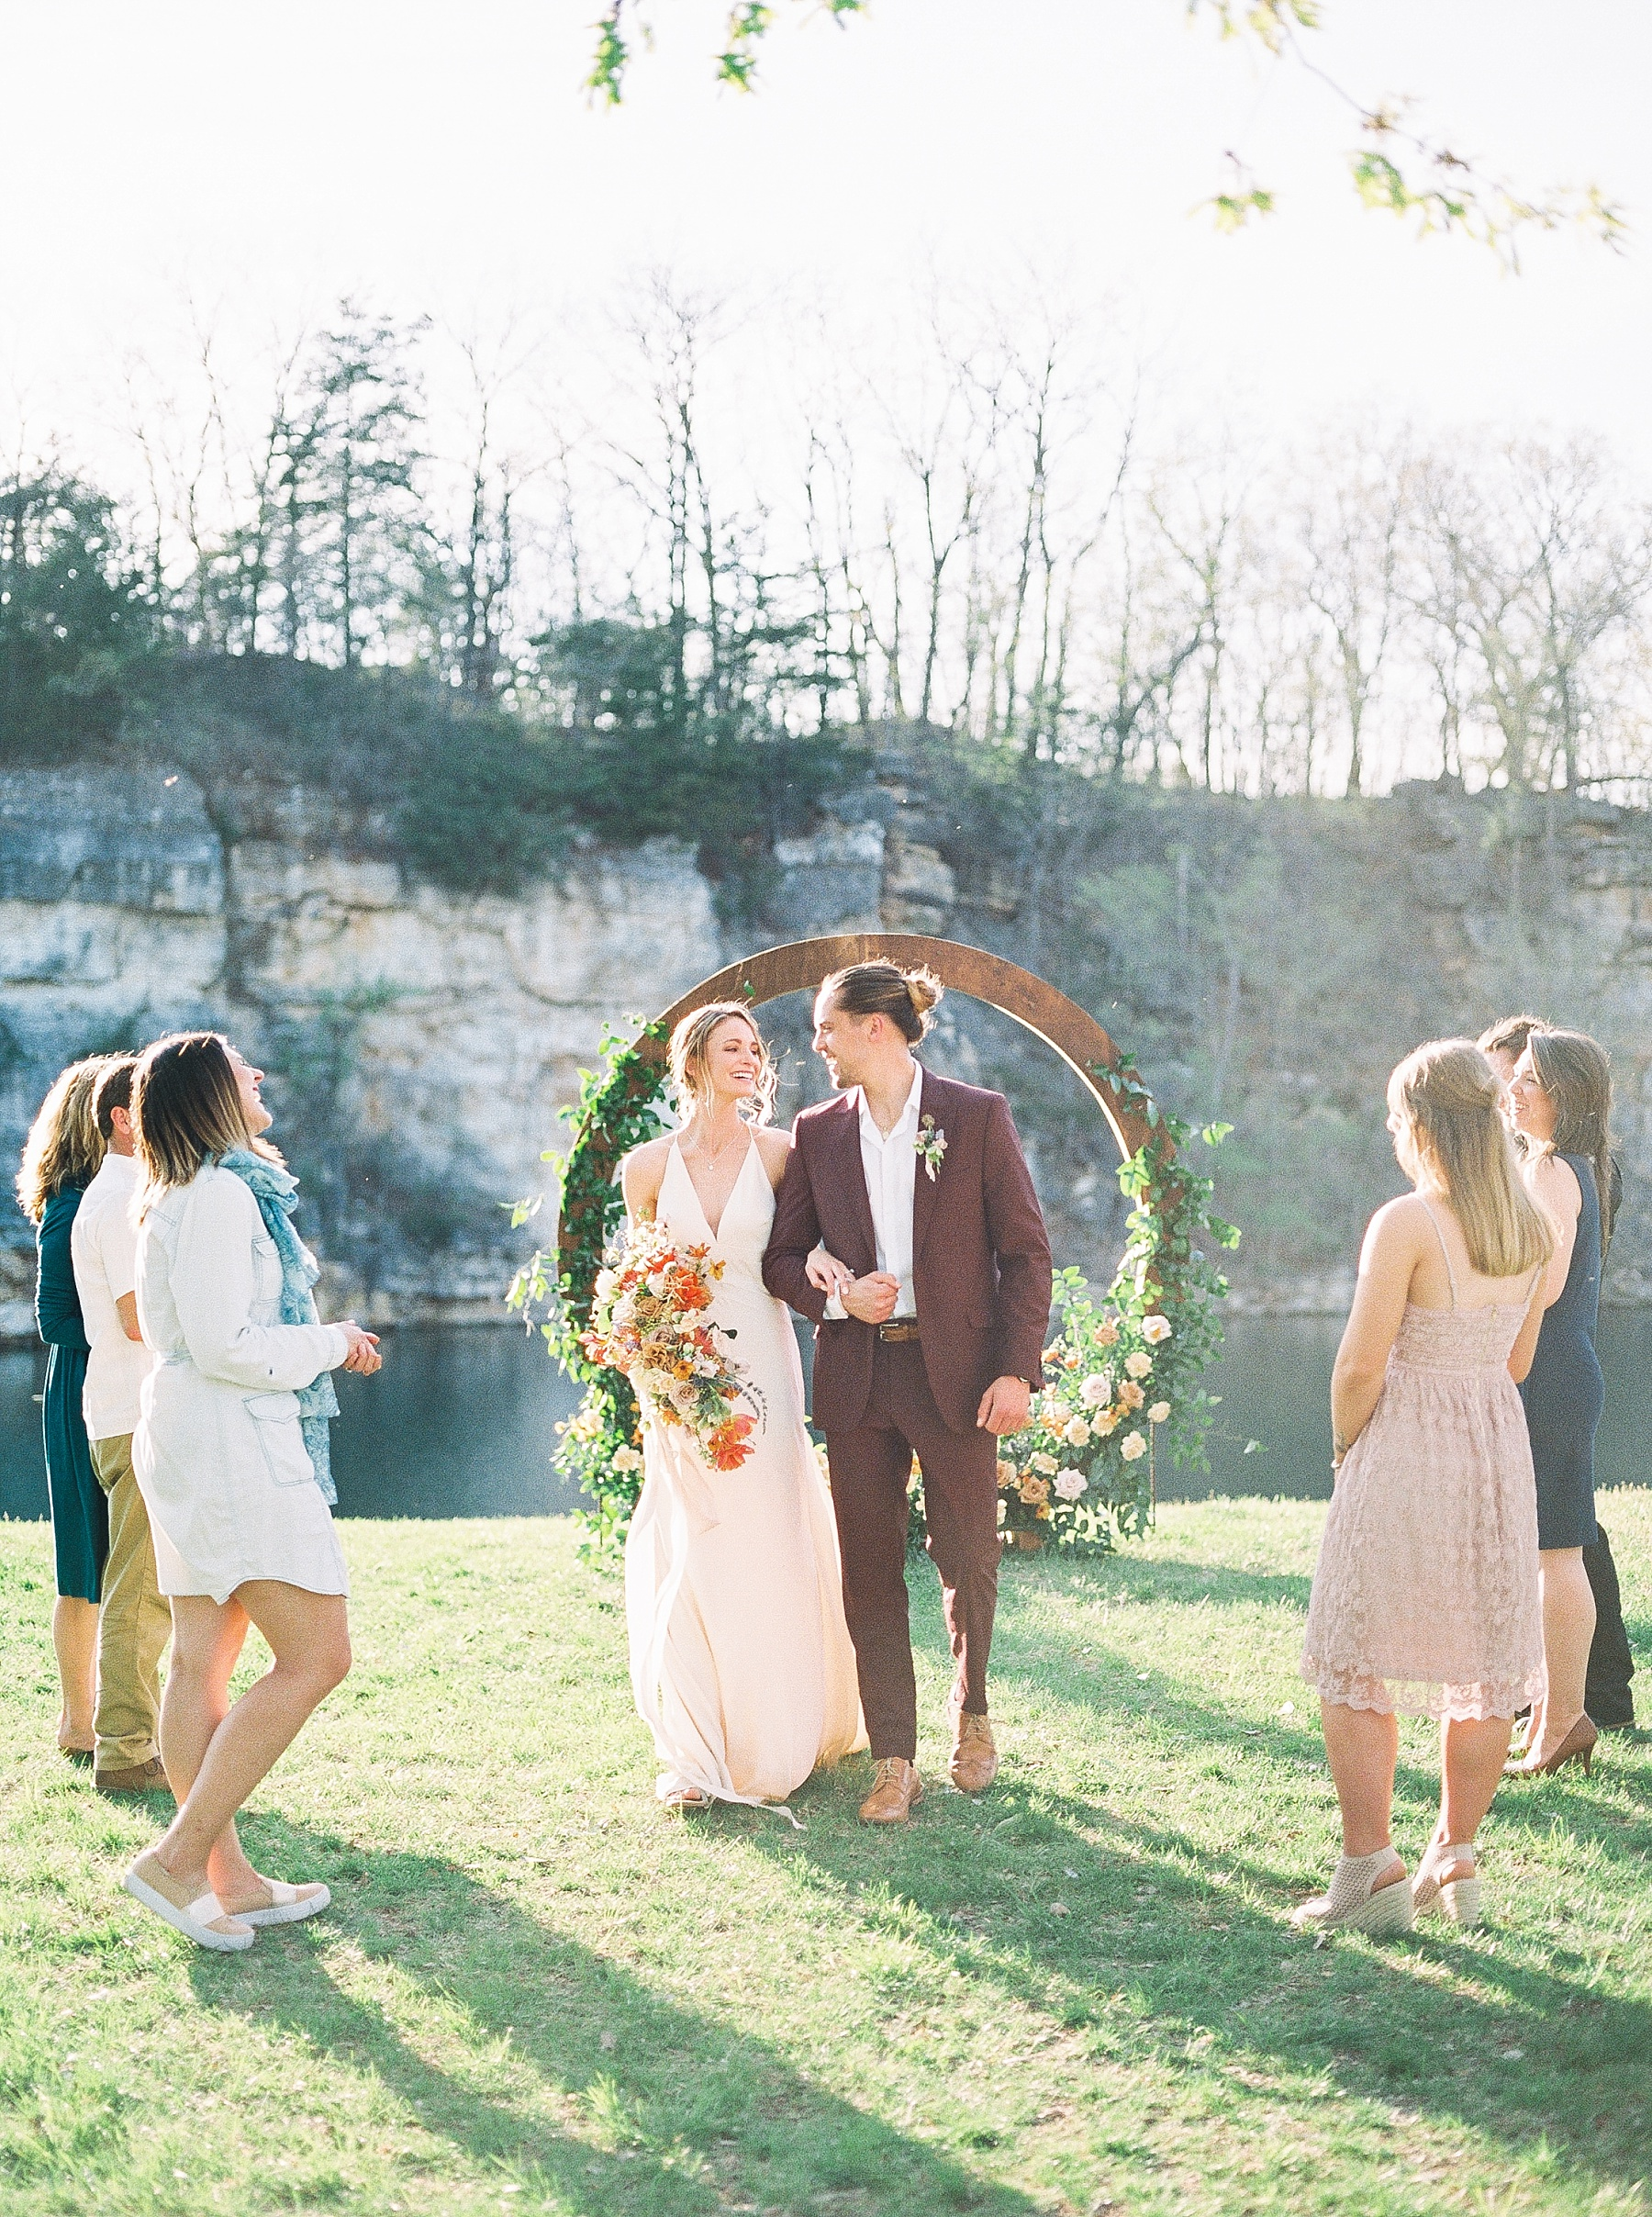 Intimate Spanish and French Inspired Destination Wedding with Lakeside Dinner Party at Dusk at Wildcliff by Kelsi Kliethermes Photography Best Missouri and Maui Wedding Photographer_0080.jpg